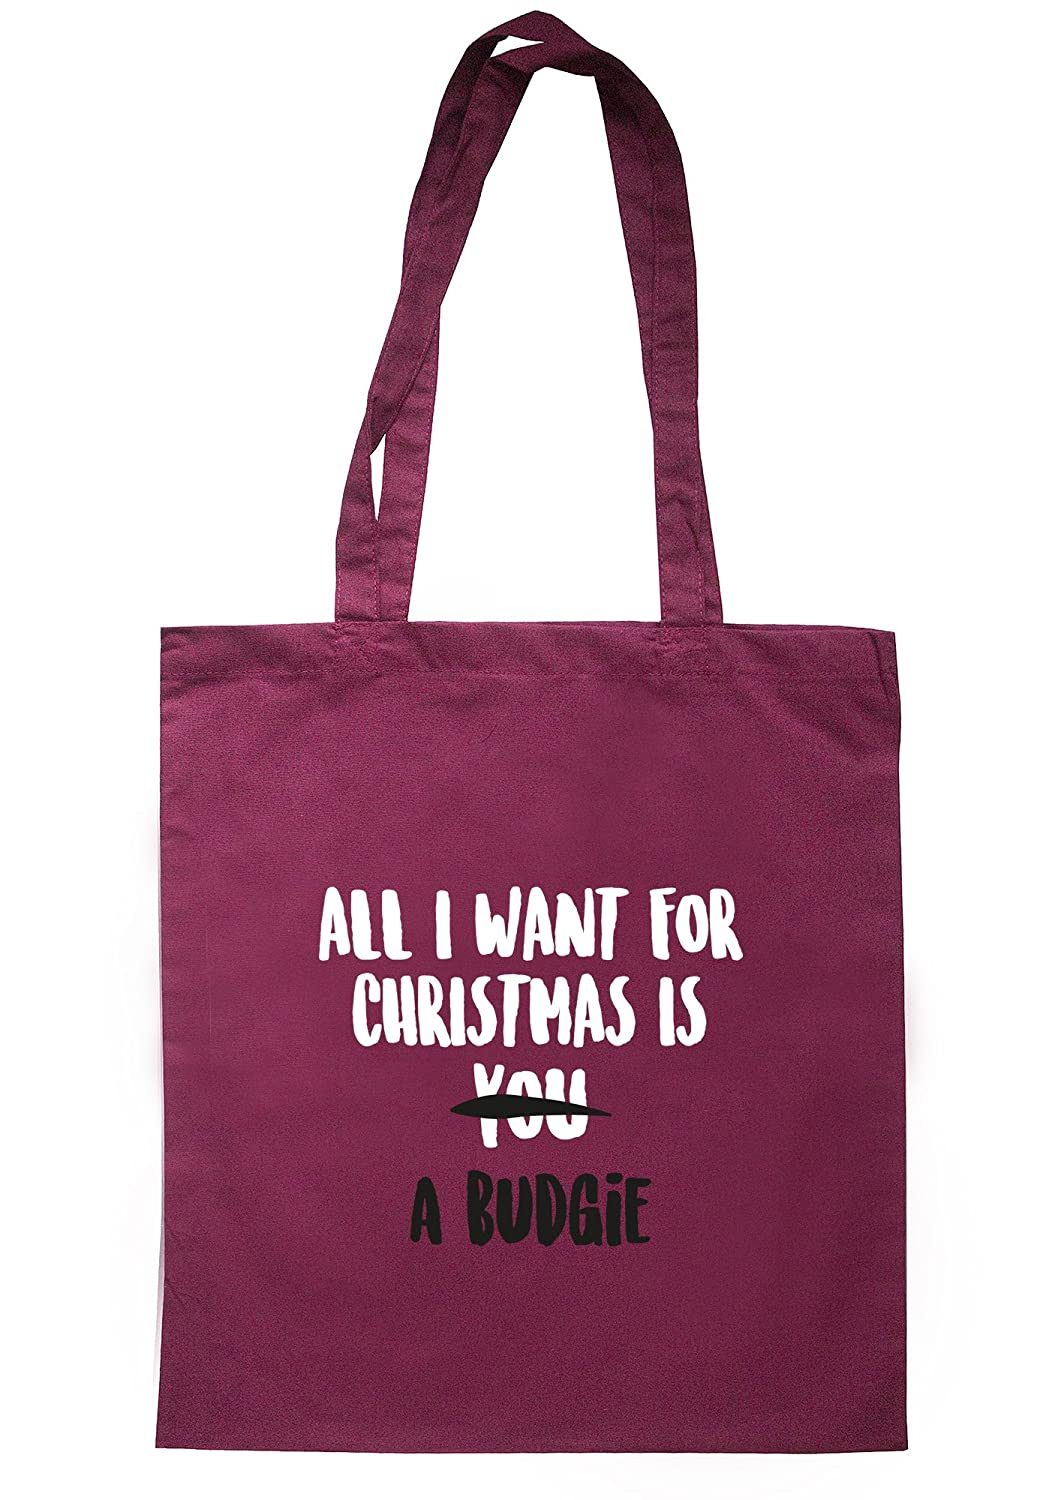 illustratedidentity All I Want For Christmas Is A Budgie Tote Bag 37.5cm x 42cm with long handles TB1052-TB-NV